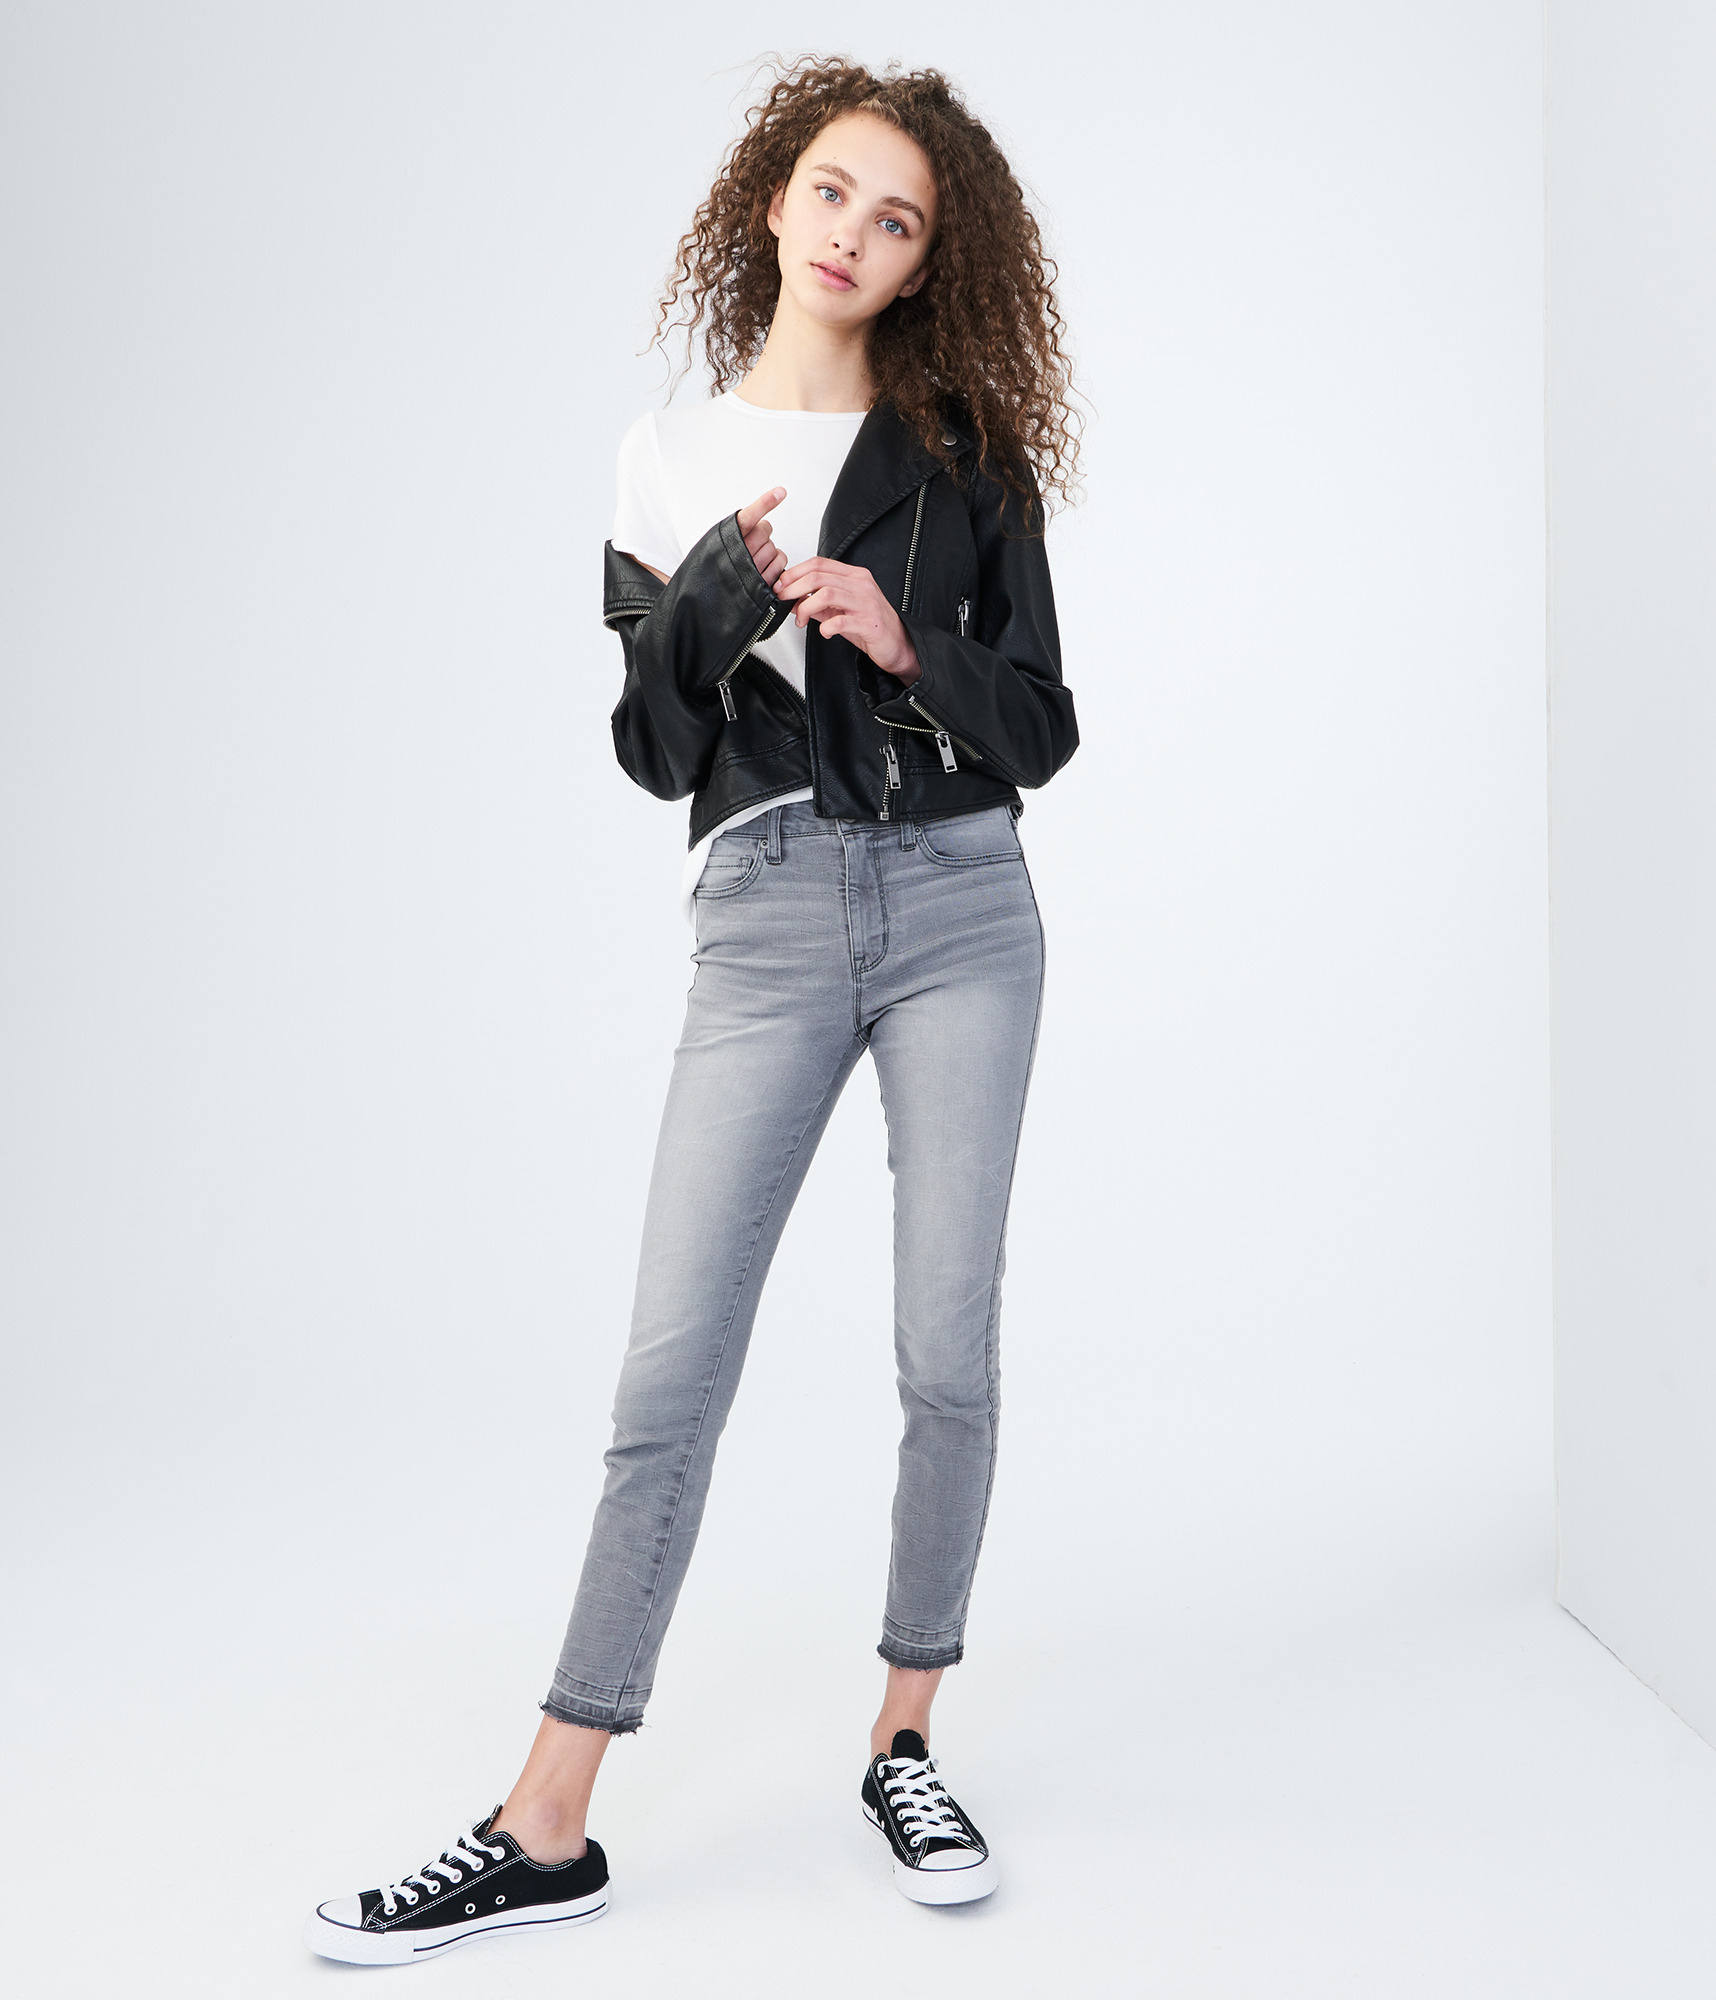 Aeropostale Seriously Stretchy High-Waisted Ankle Jegging - Grey, 6 R